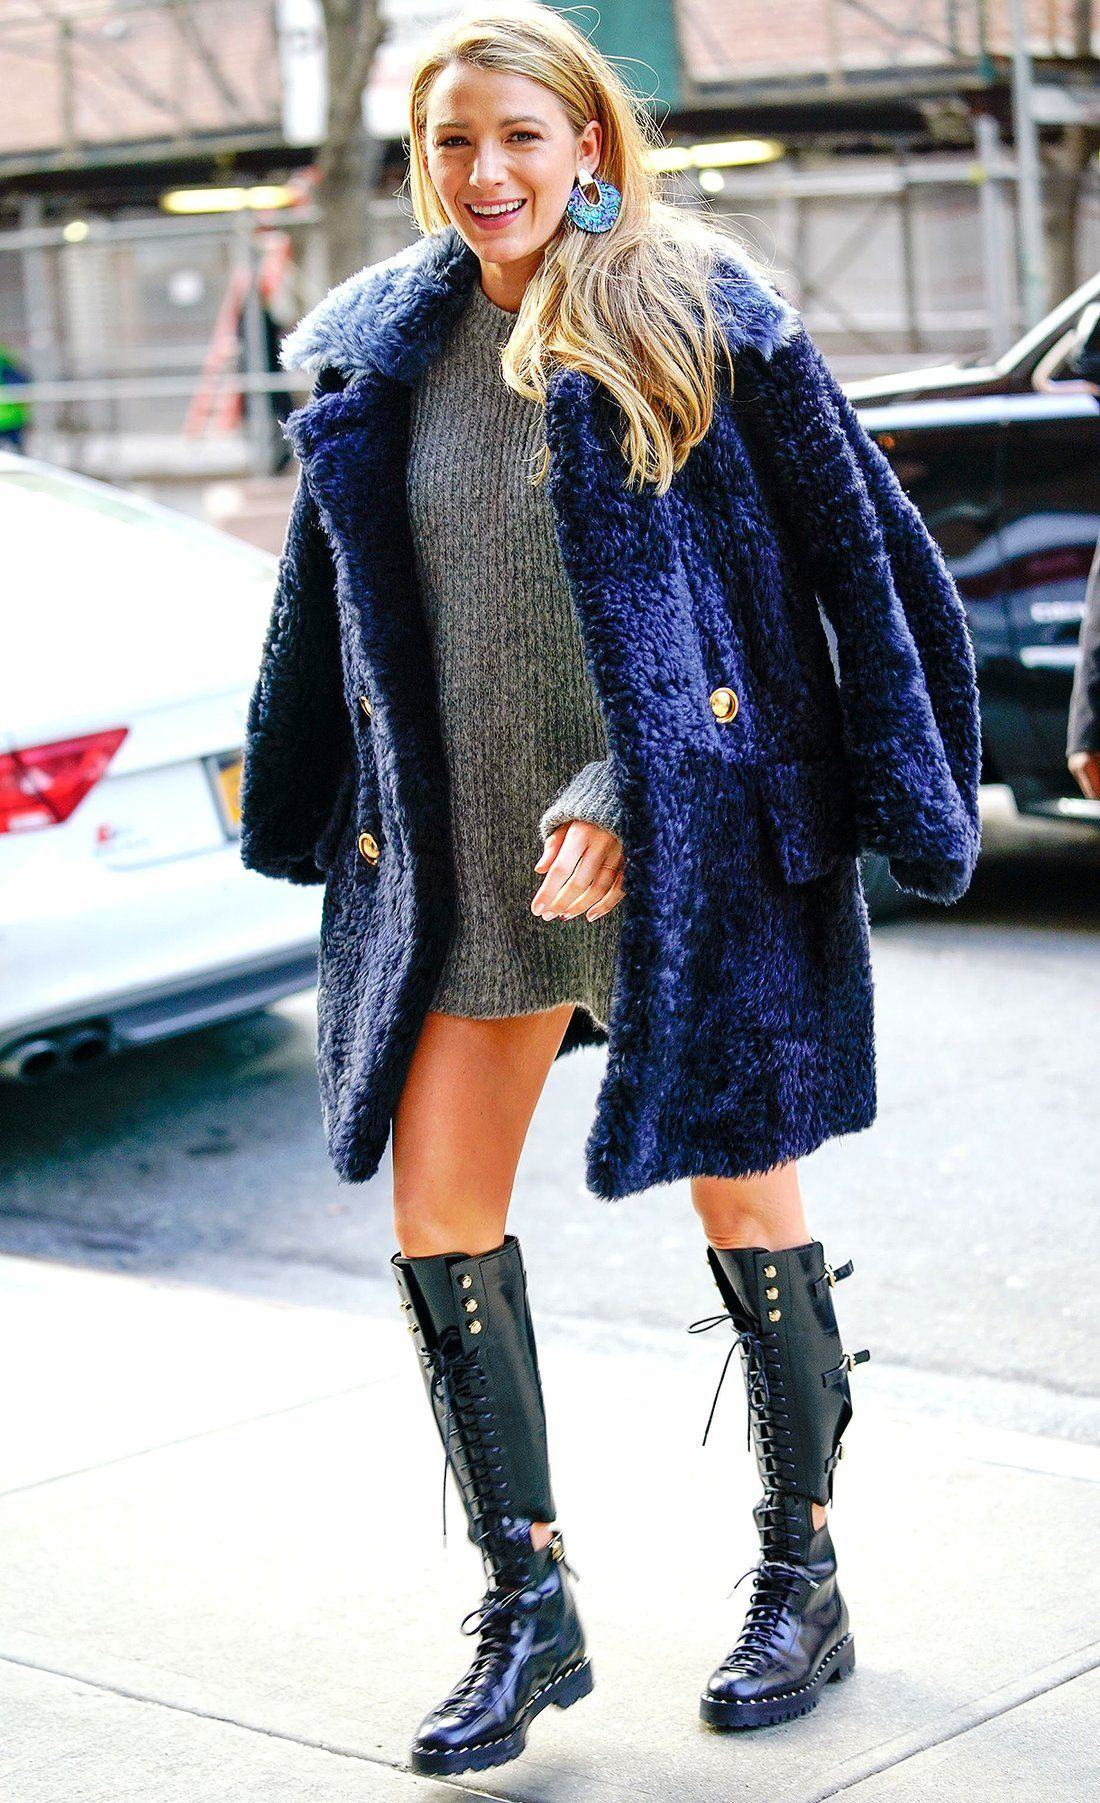 37b1c40c0d8 Blake Lively Wears Just  Pilling Pregnancy Sweater  and Boots